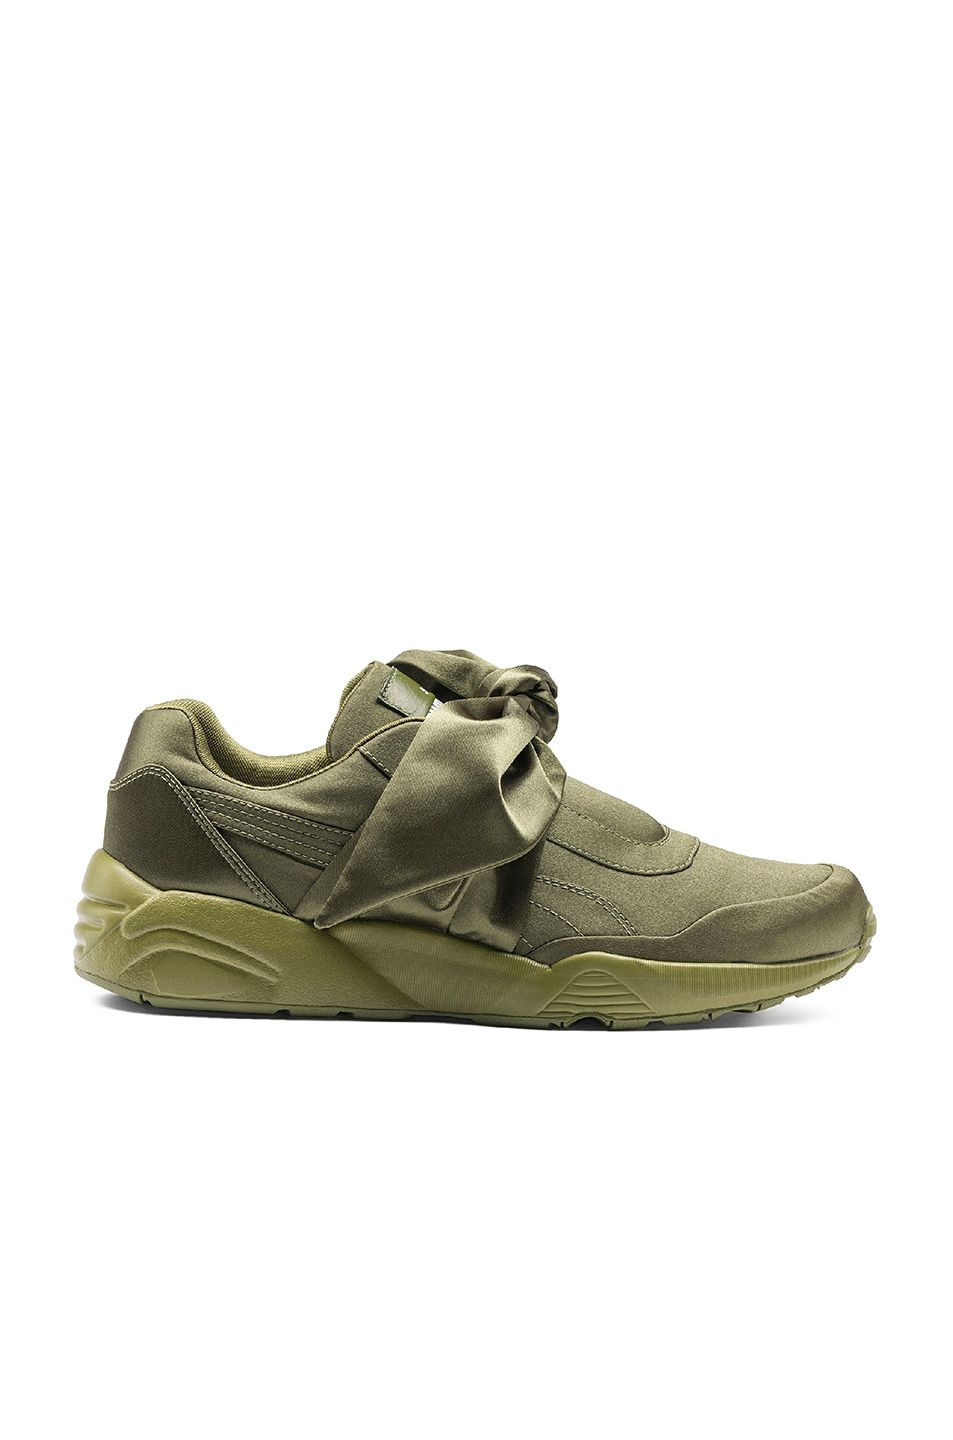 80c1a53c82b womens fenty puma by rihanna bow sneakers olive branch olive branch ...